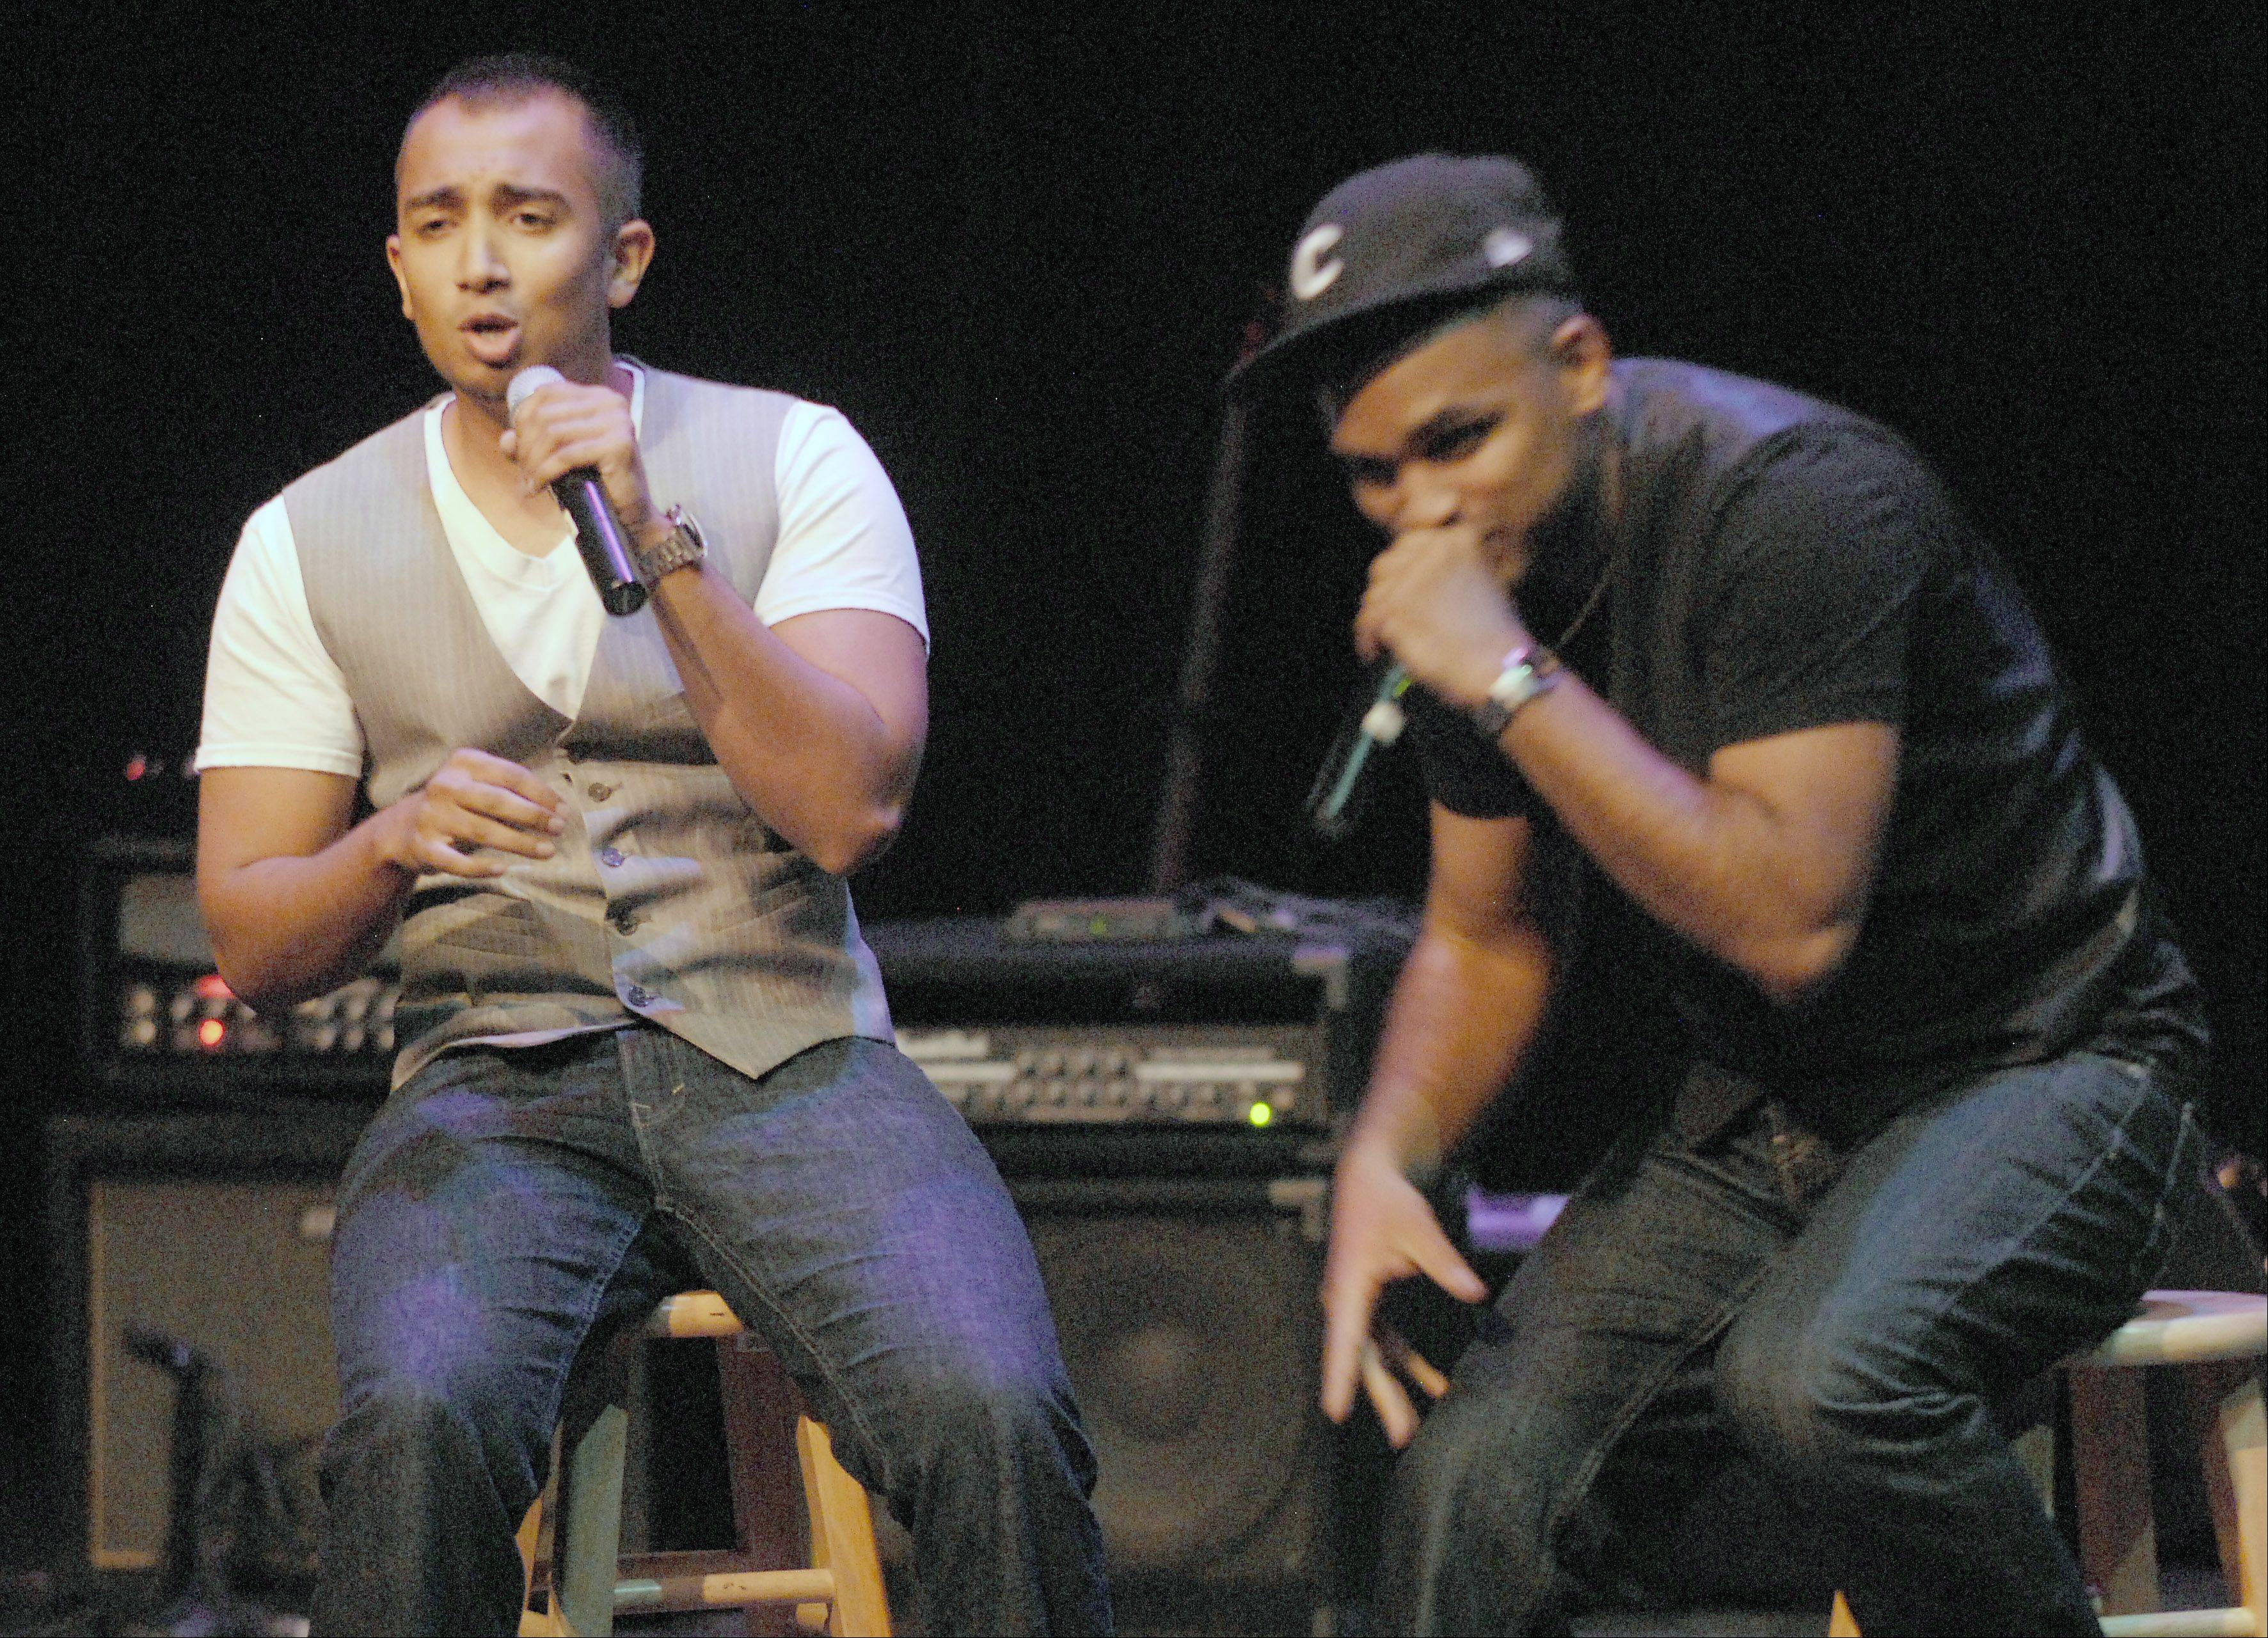 iLLest Vocals, featuring Sanu John of Skokie and Shawn Kurian of Wheeling, perform last August as one of the five finalists of Suburban Chicago's Got Talent. The duo won the contest last year.